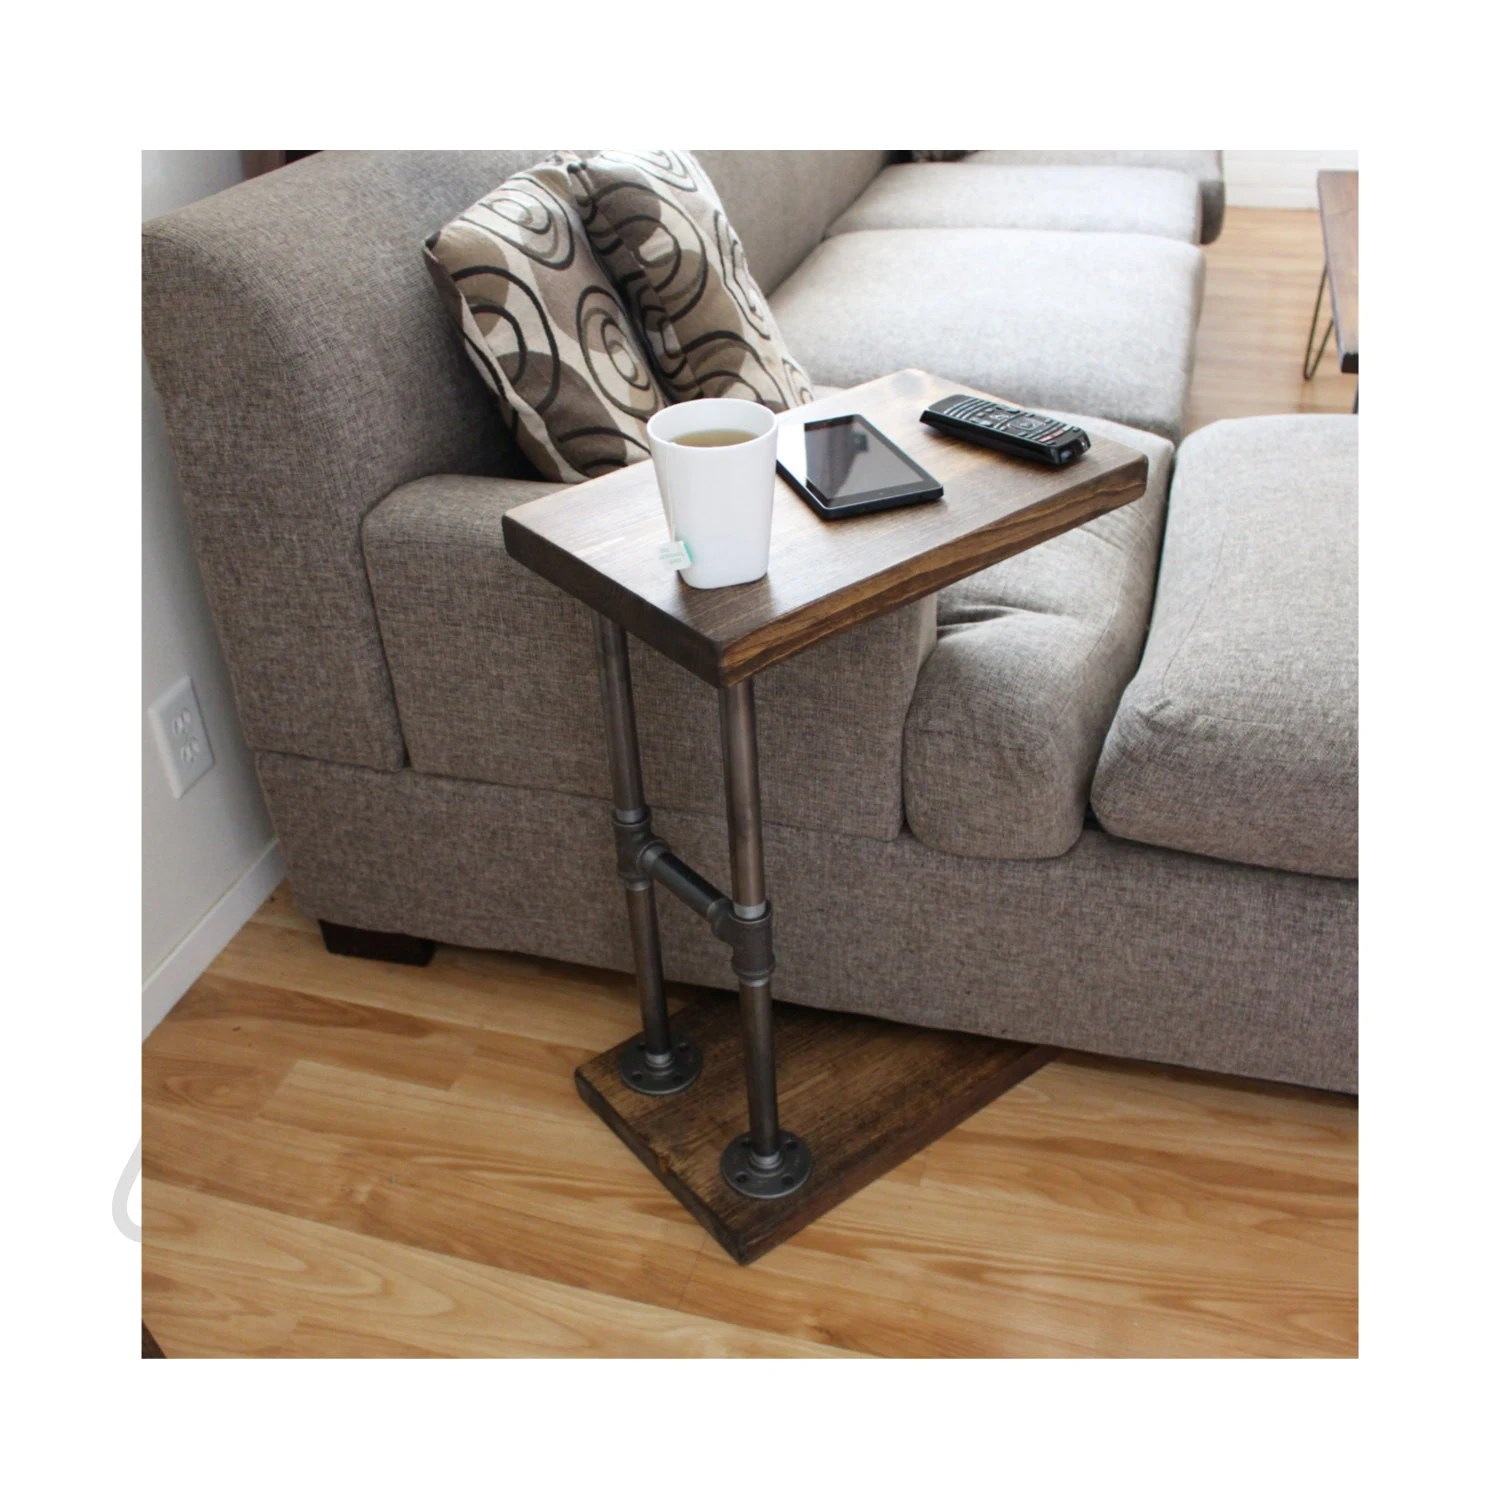 small table that slides under sofa extra deep seated uk industrial furniture coffee side laptop stand